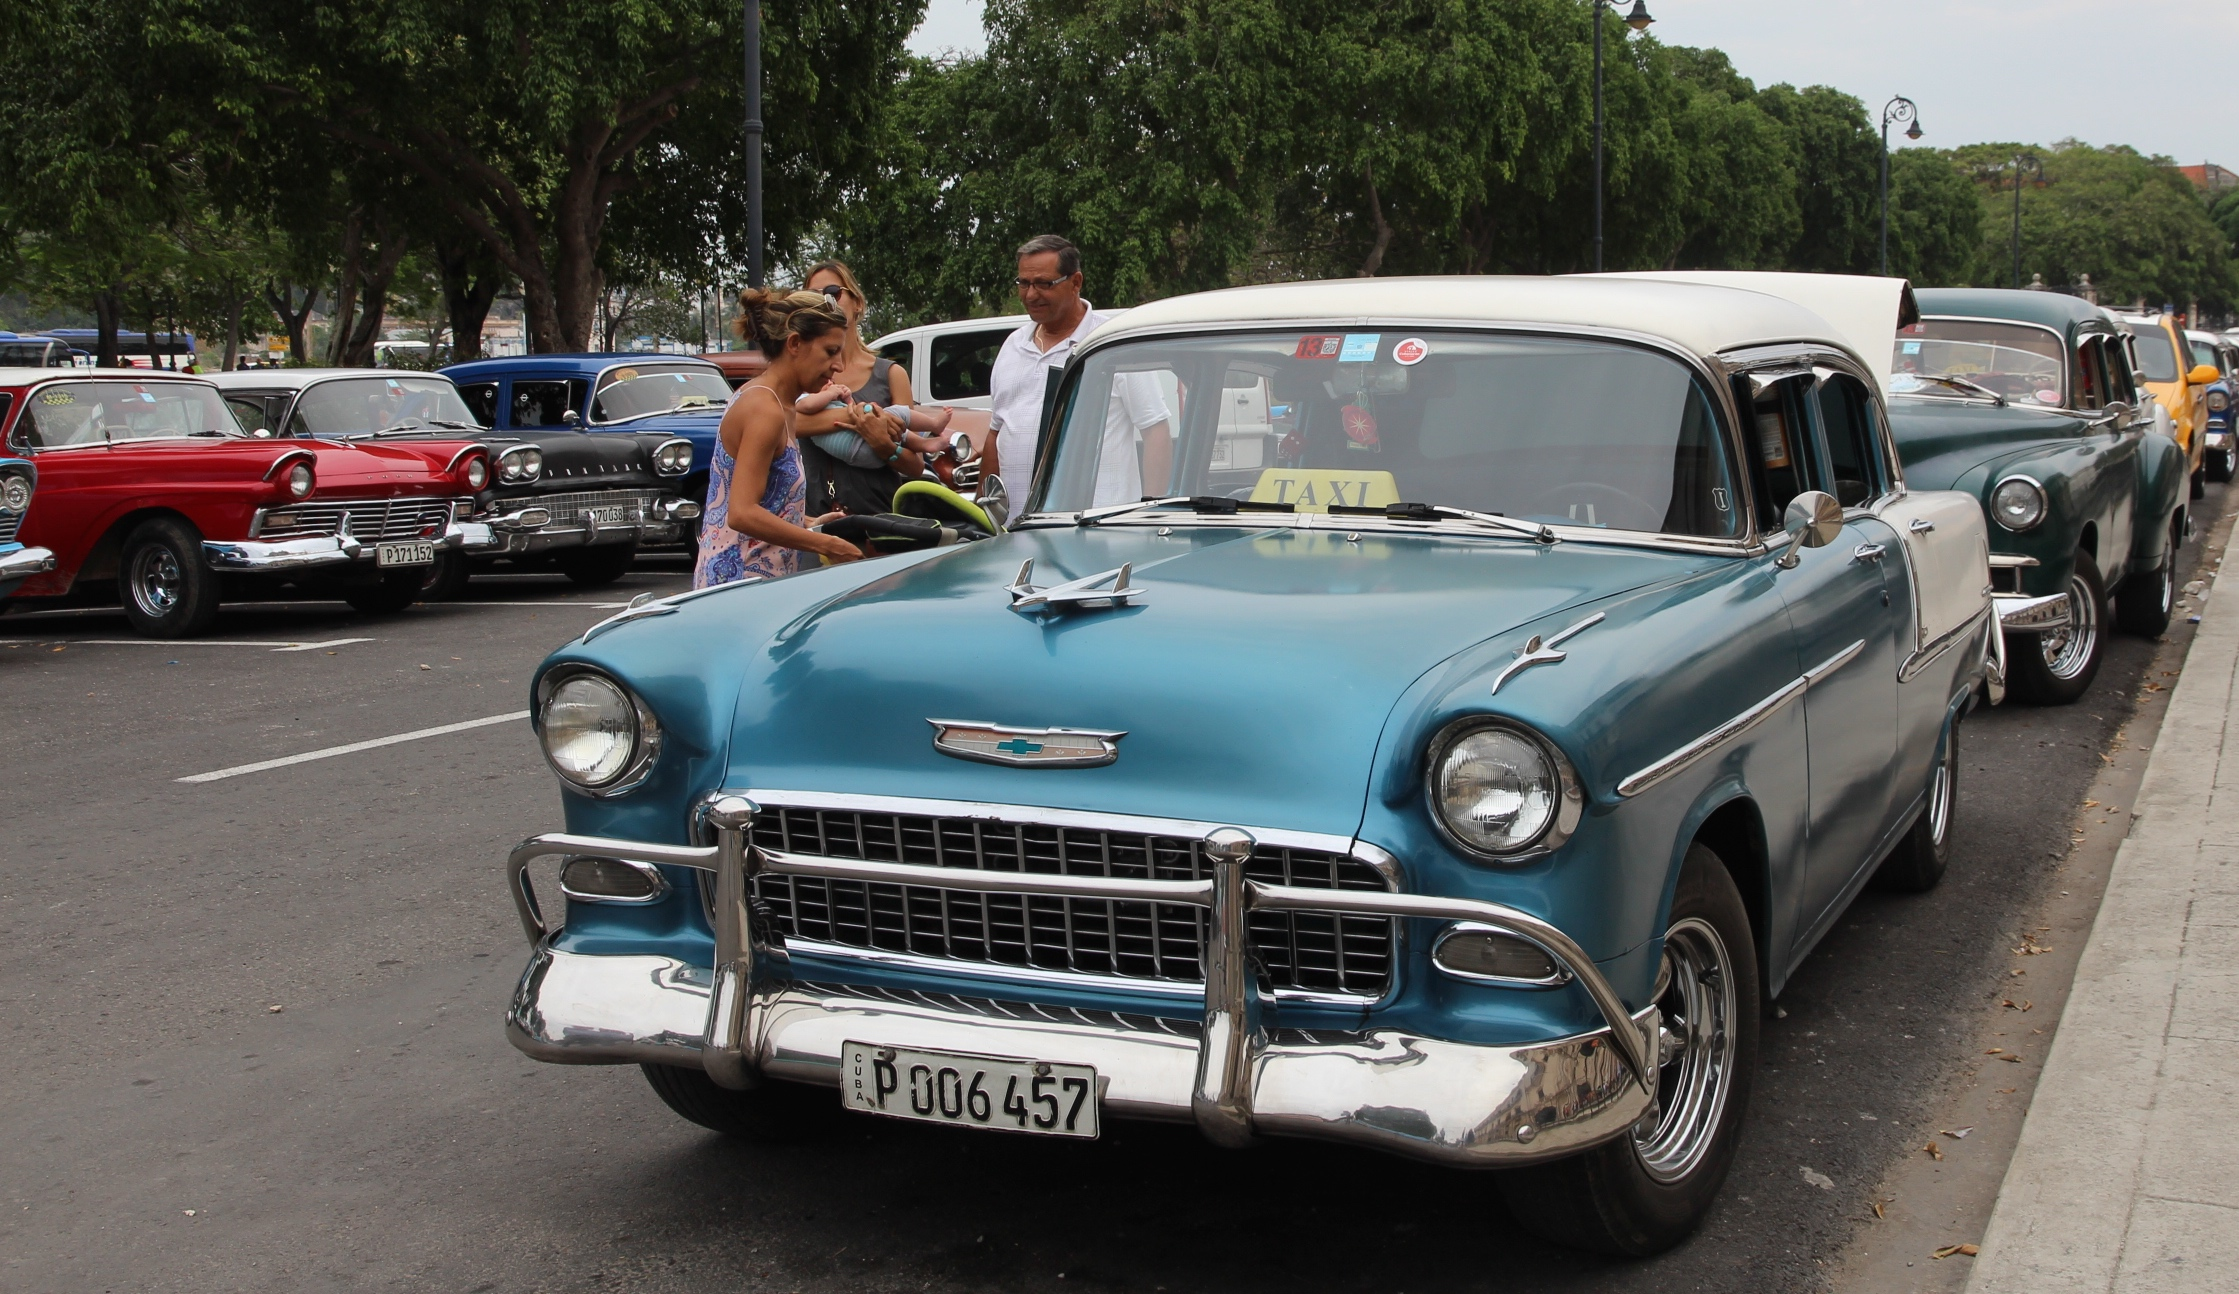 Vintage Chevy in Cuba | Where to next?